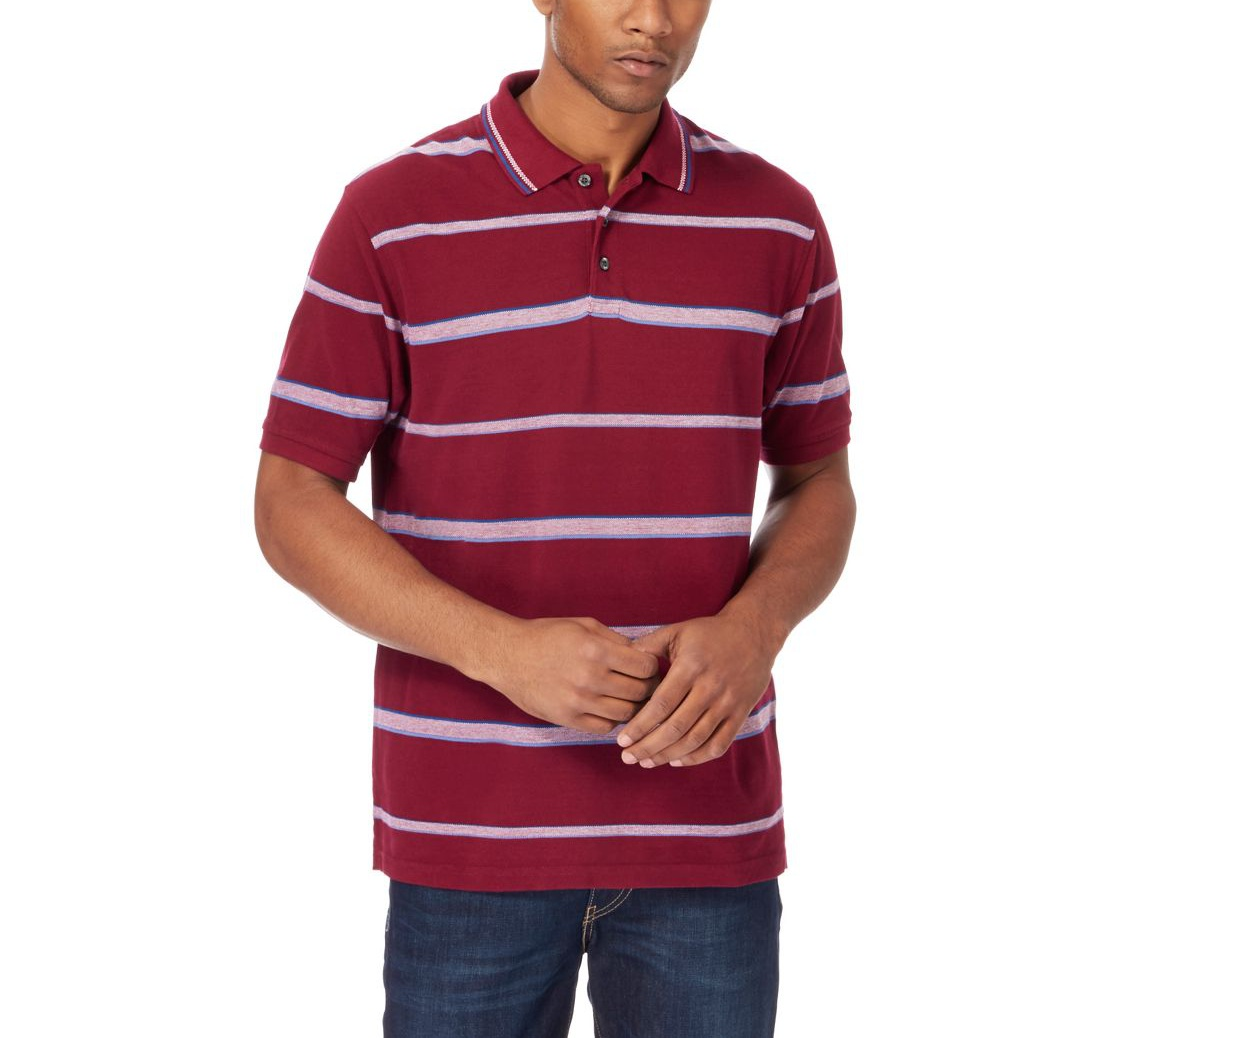 Maine New England Plum Dark red striped polo shirt